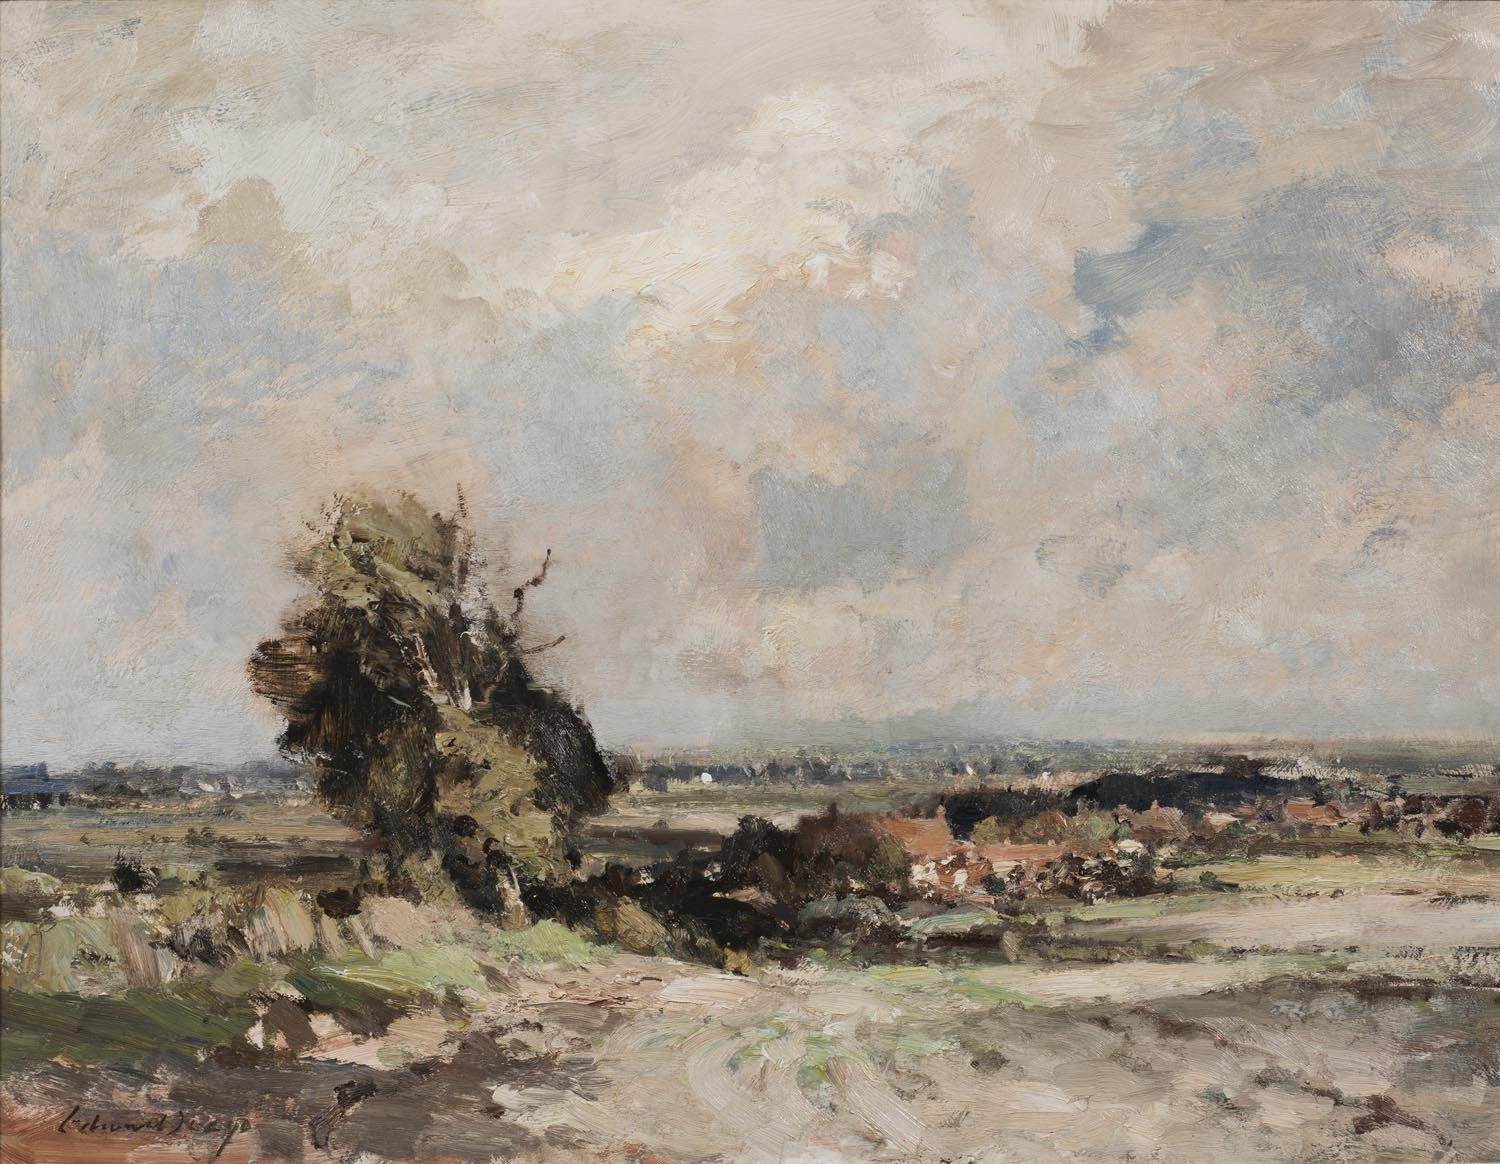 Landscape at Martham, Norfolk